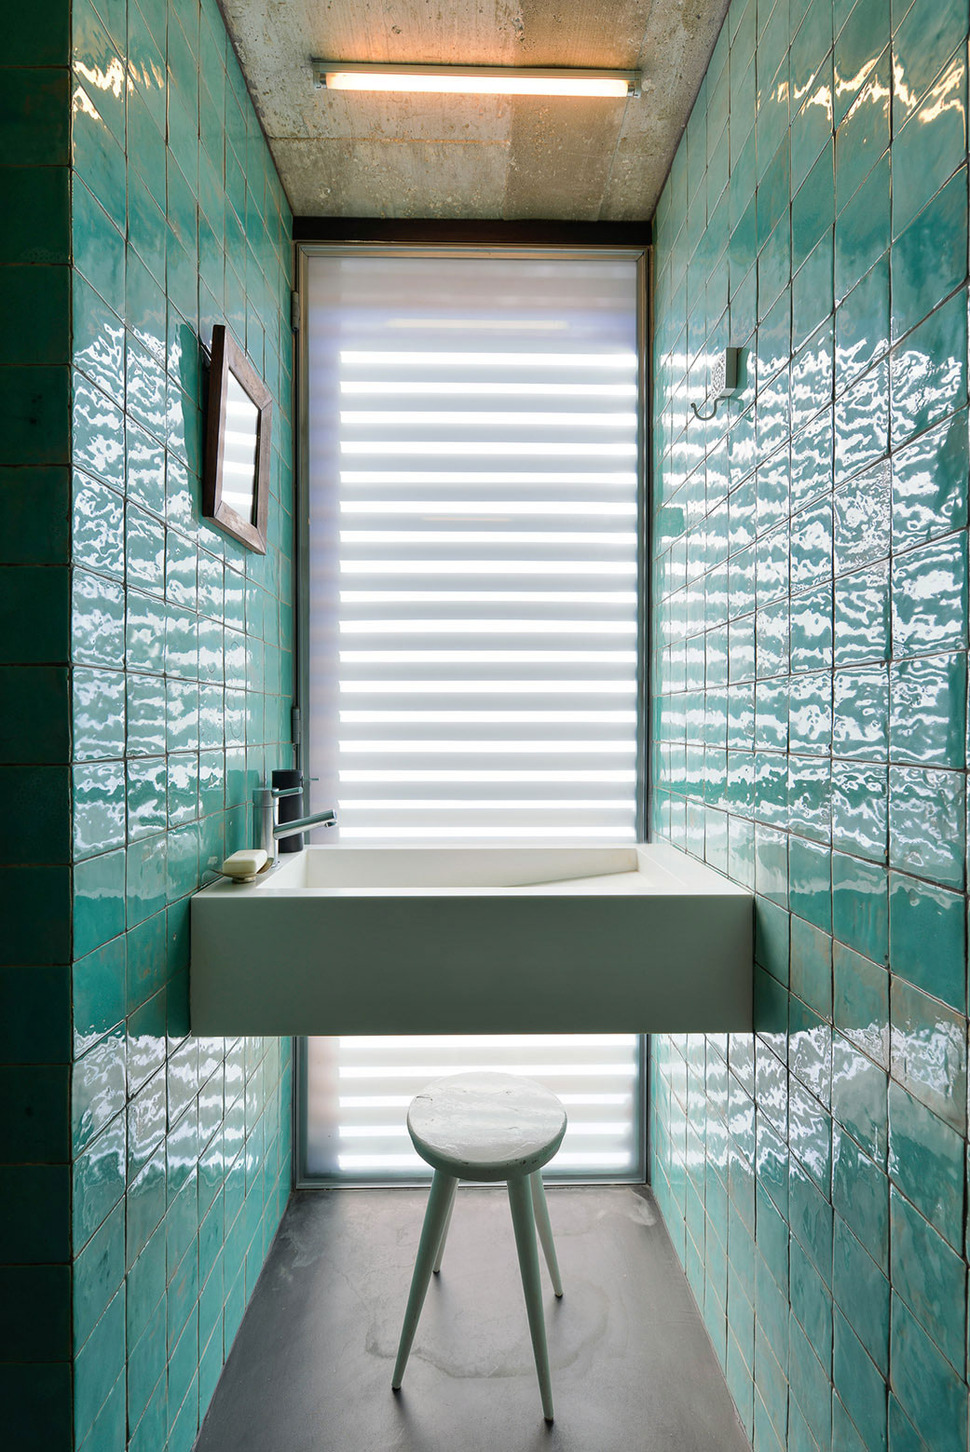 Top 10 Tile Design Ideas for a Modern Bathroom for 2015